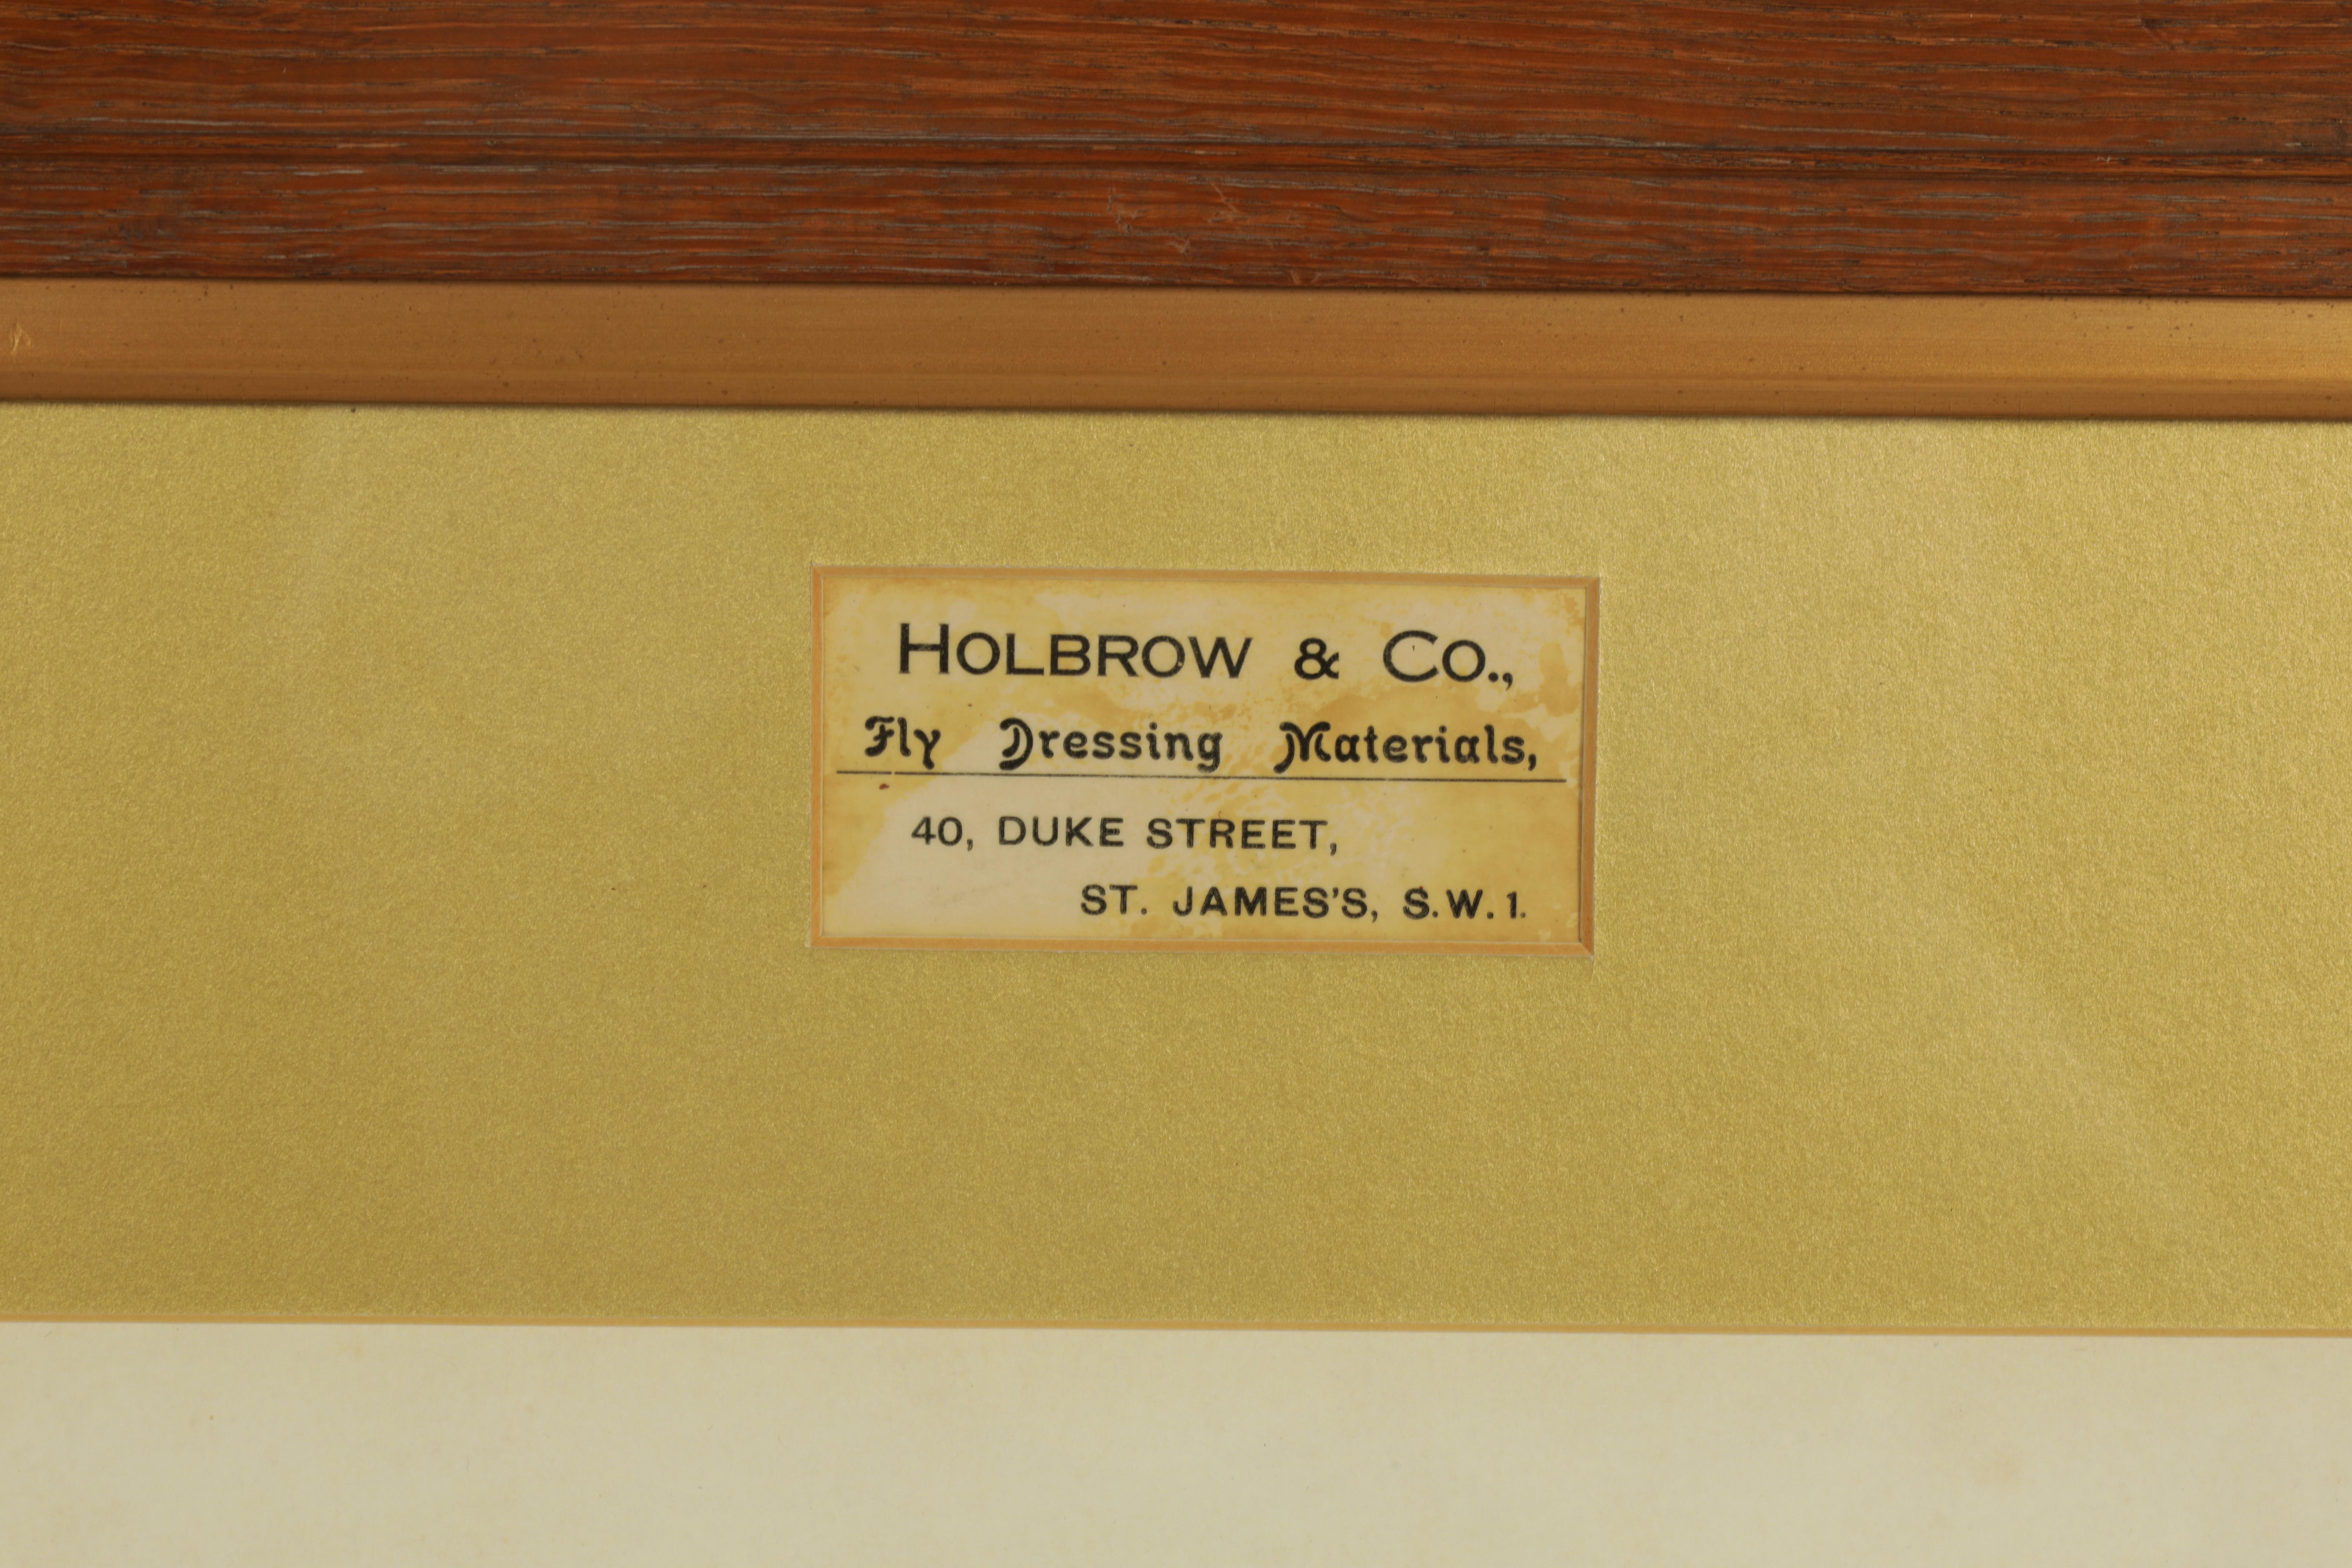 AN EDWARDIAN FLY FISHING SHOP DISPLAY FOR SALMON FLIES from Holbrook & Co. Fly Dressing Materials, - Image 3 of 3